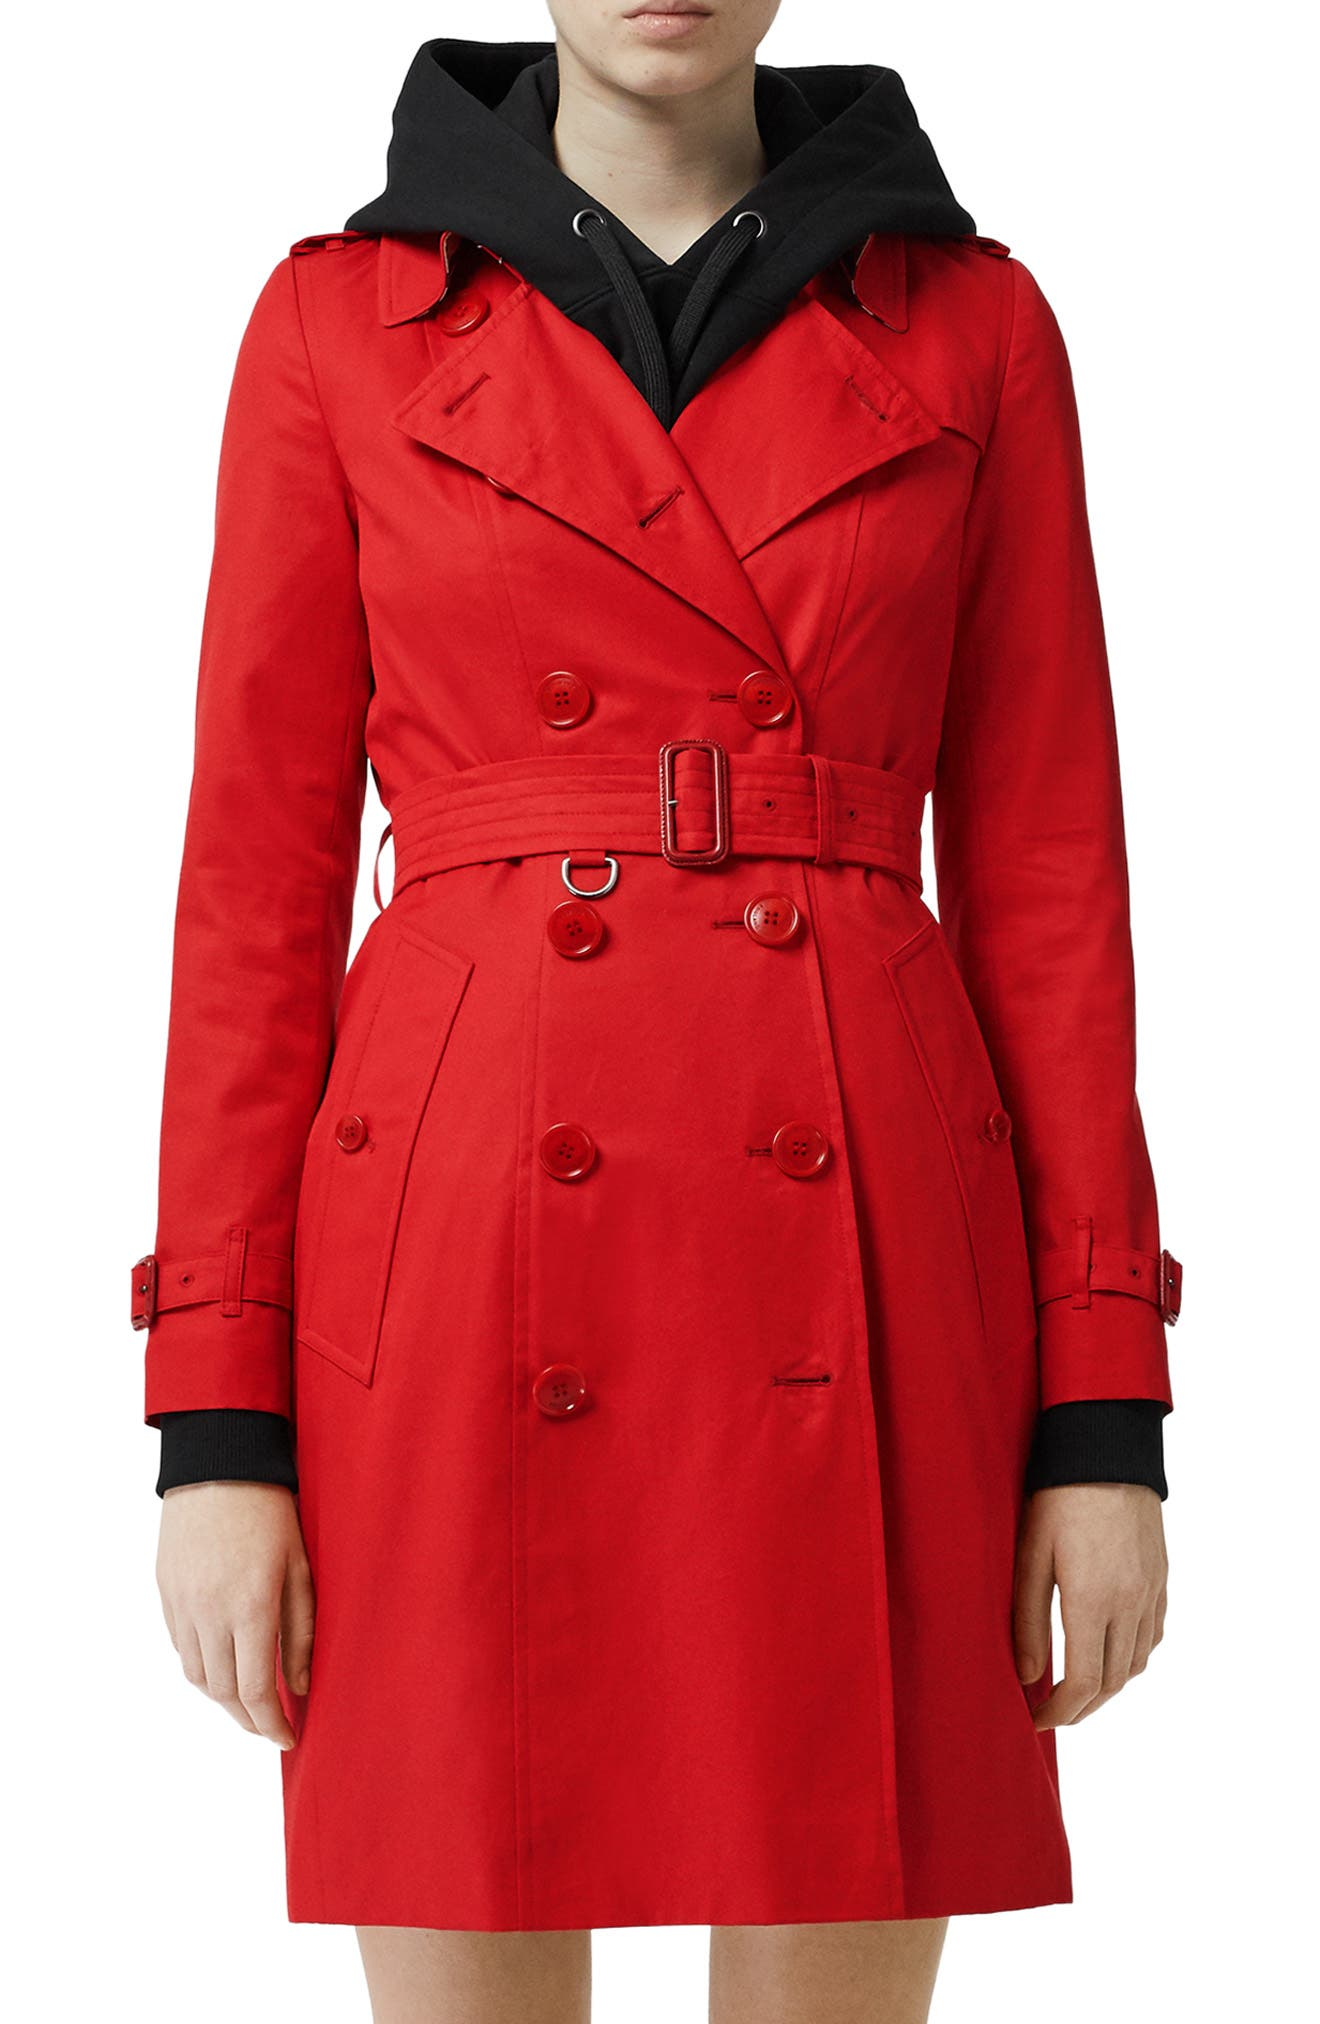 BURBERRY, The Chelsea Cotton Gabardine Trench Coat, Main thumbnail 1, color, BRIGHT RED